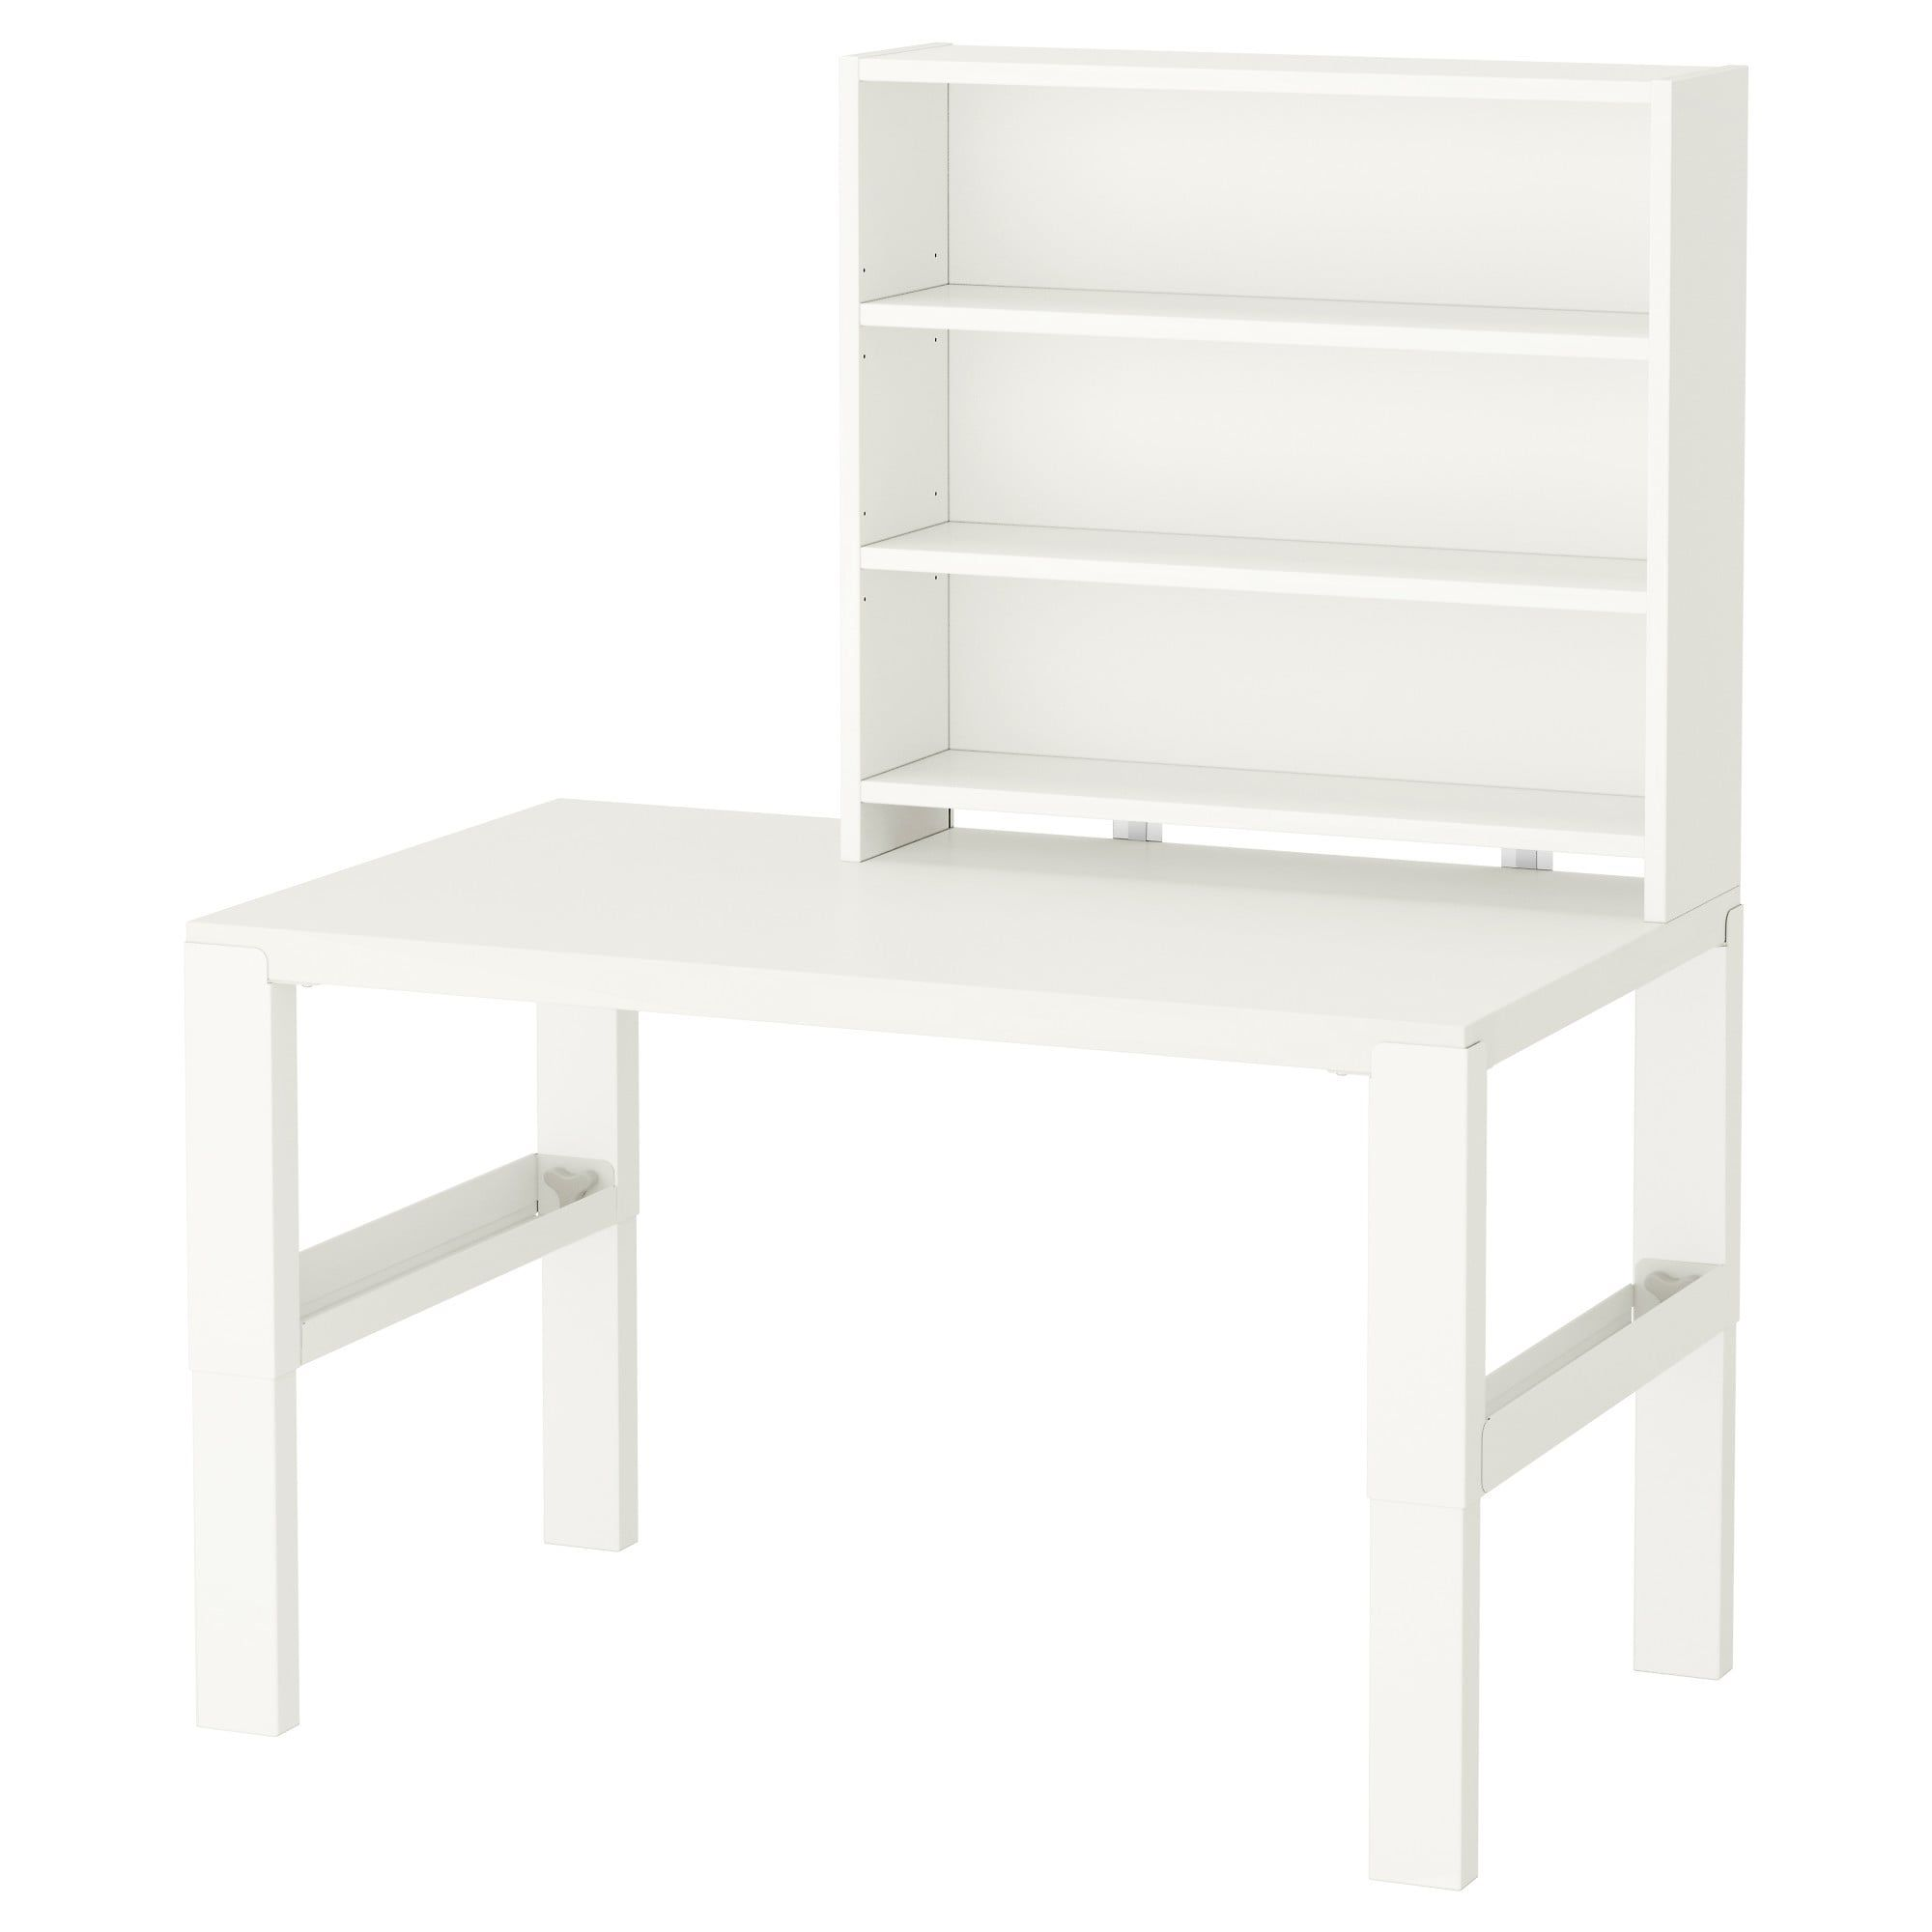 Pahl Desk With Add On Unit White 96x58 Cm Shop Ikea Ikea Shelves At Home Furniture Store Childrens Desk And Chair